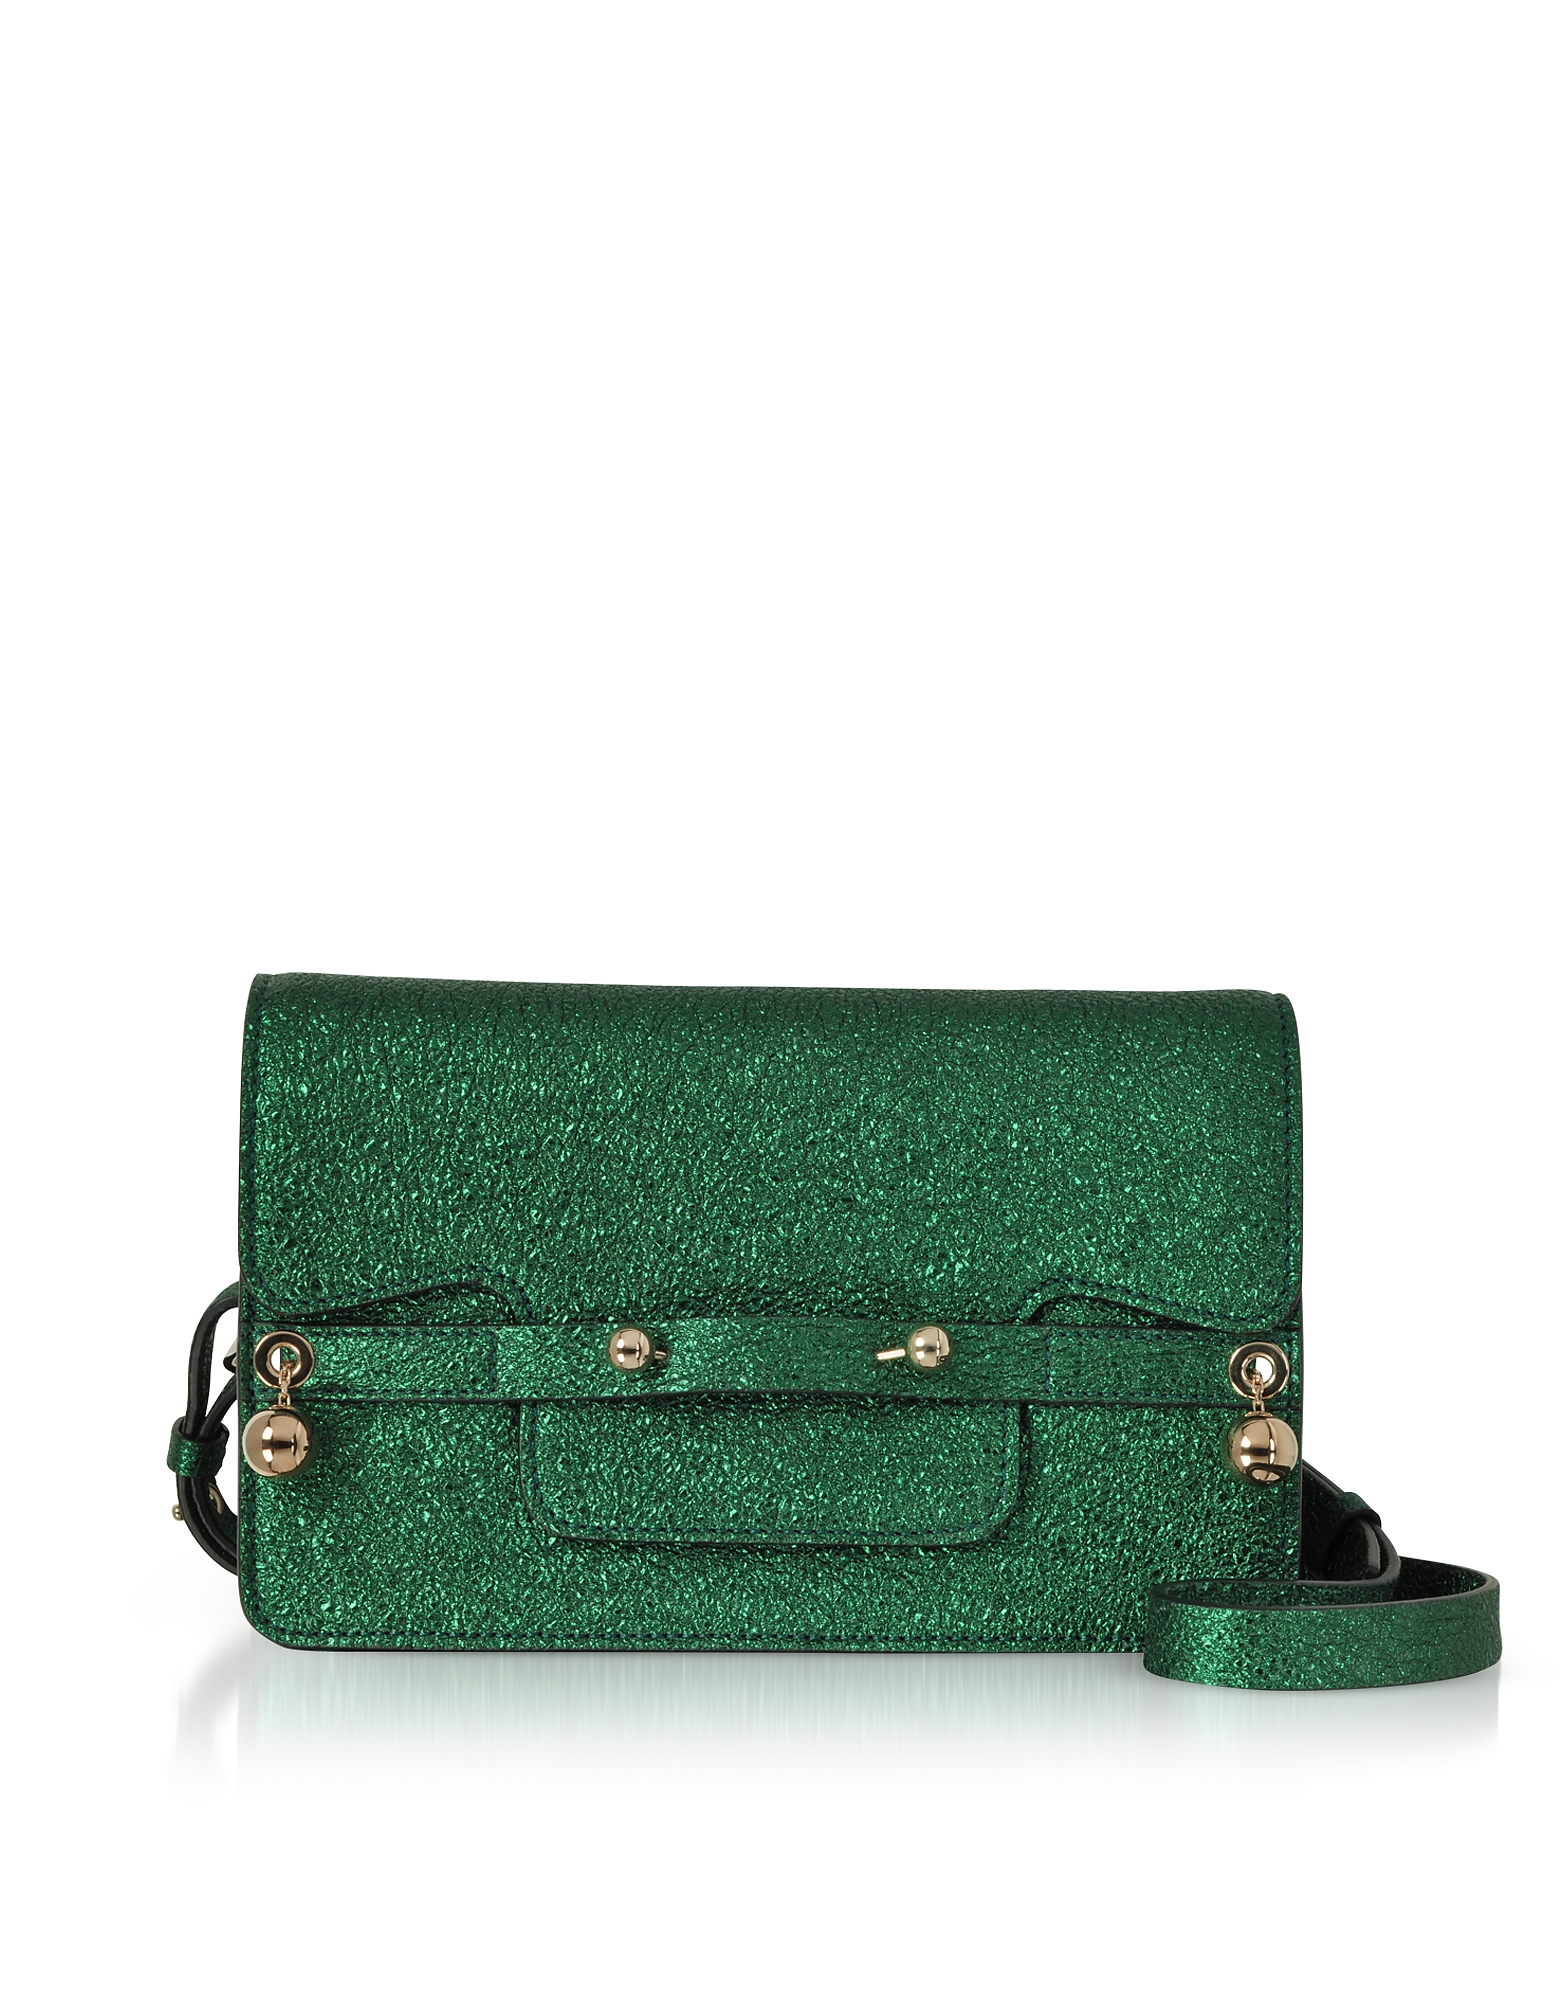 Image of RED Valentino Designer Handbags, Dark Green Crackled Metallic Leather Flap Top Crossbody Bag